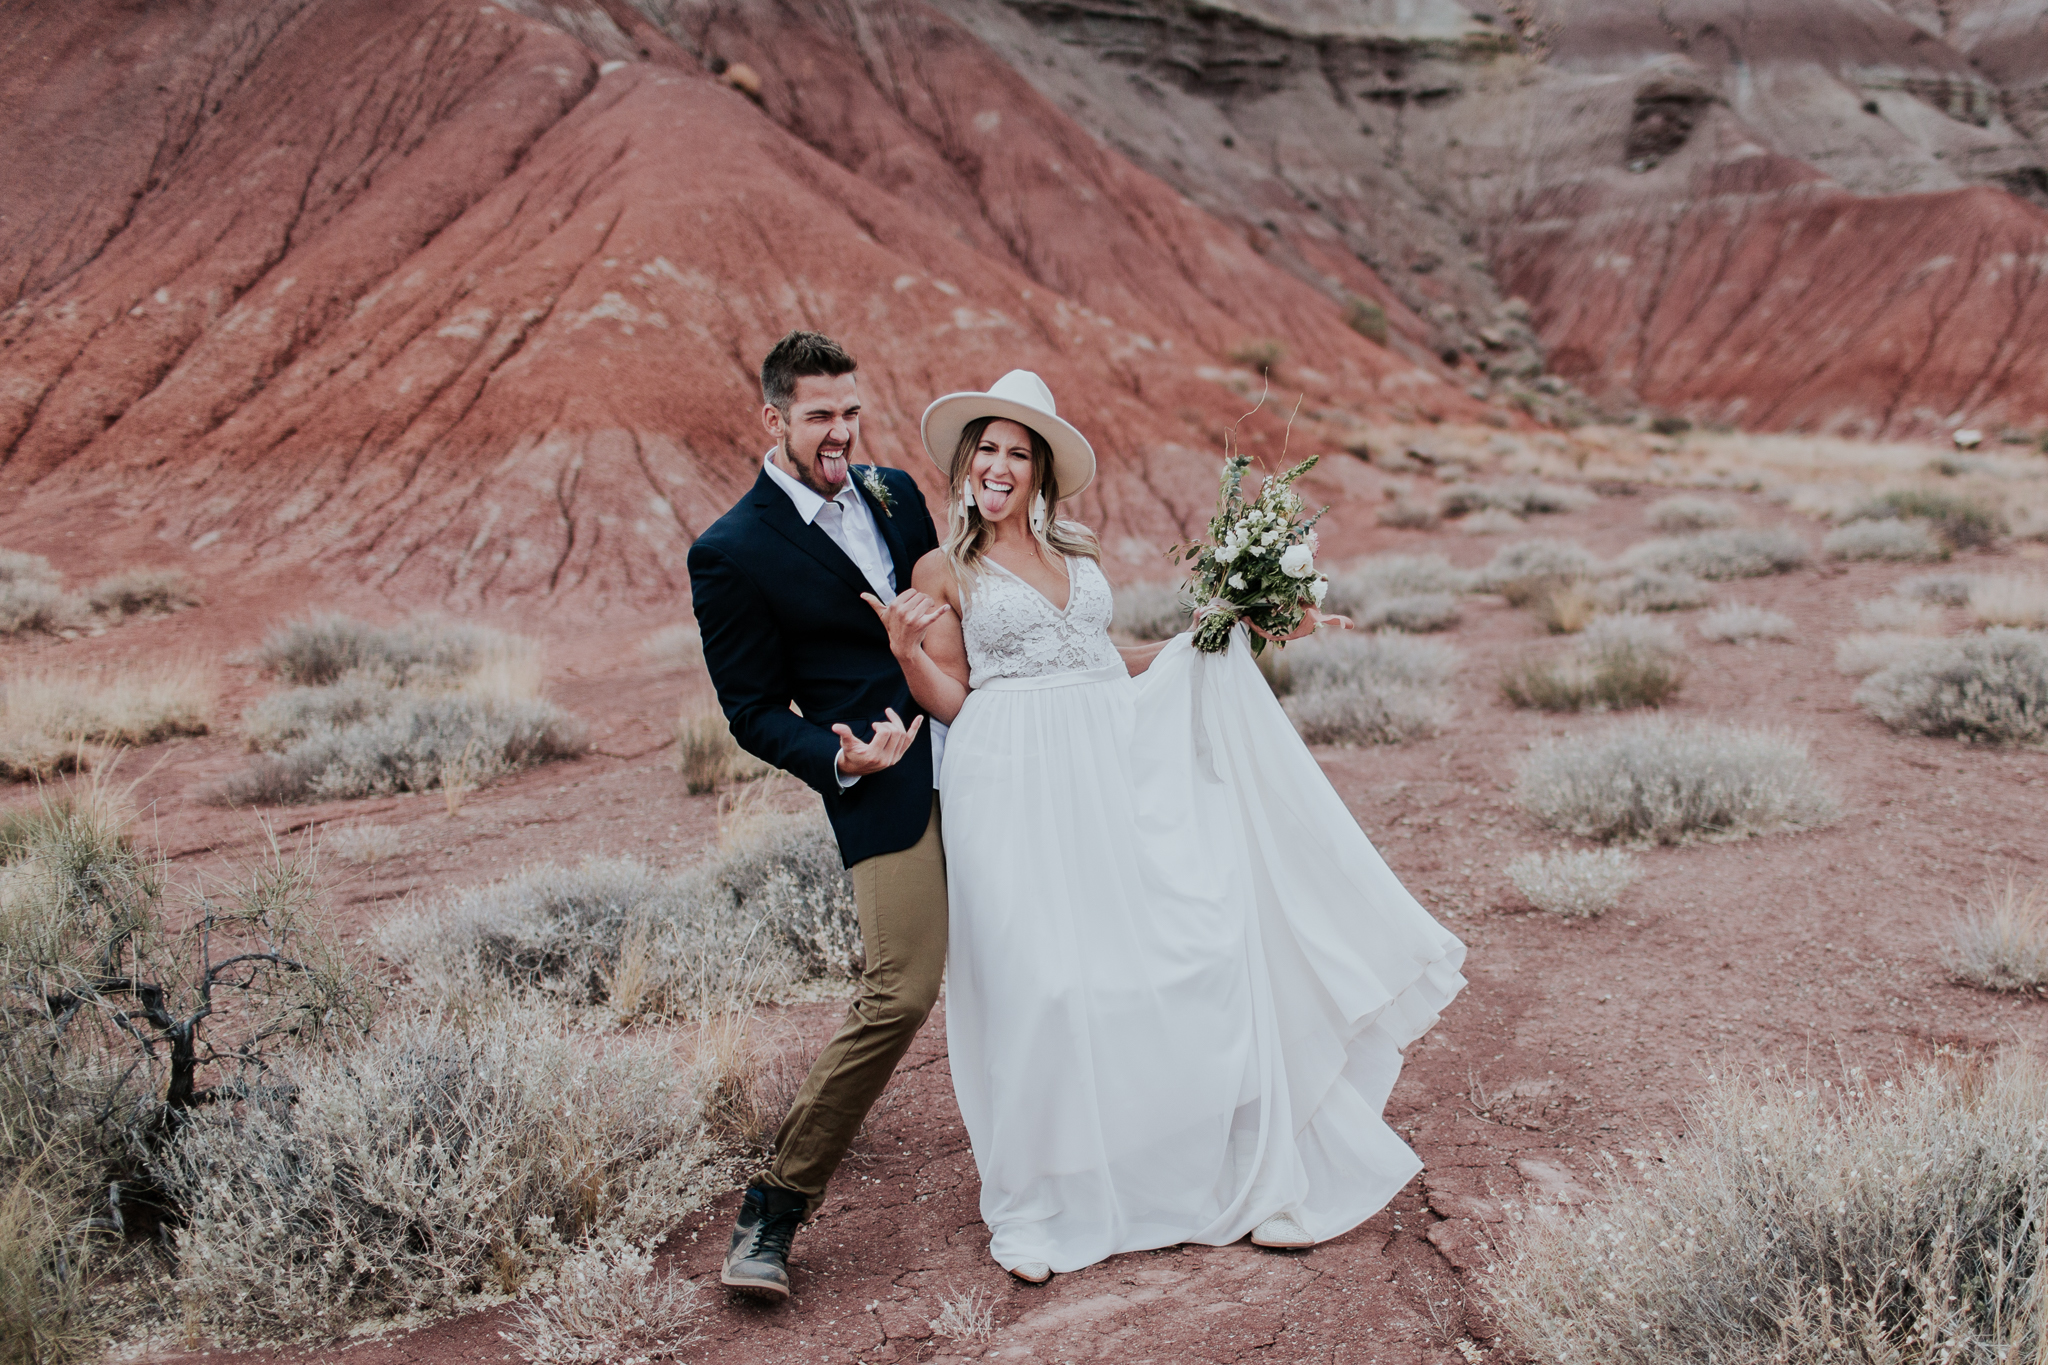 emily-hary-photography-new-mexico-elopement (106).jpg